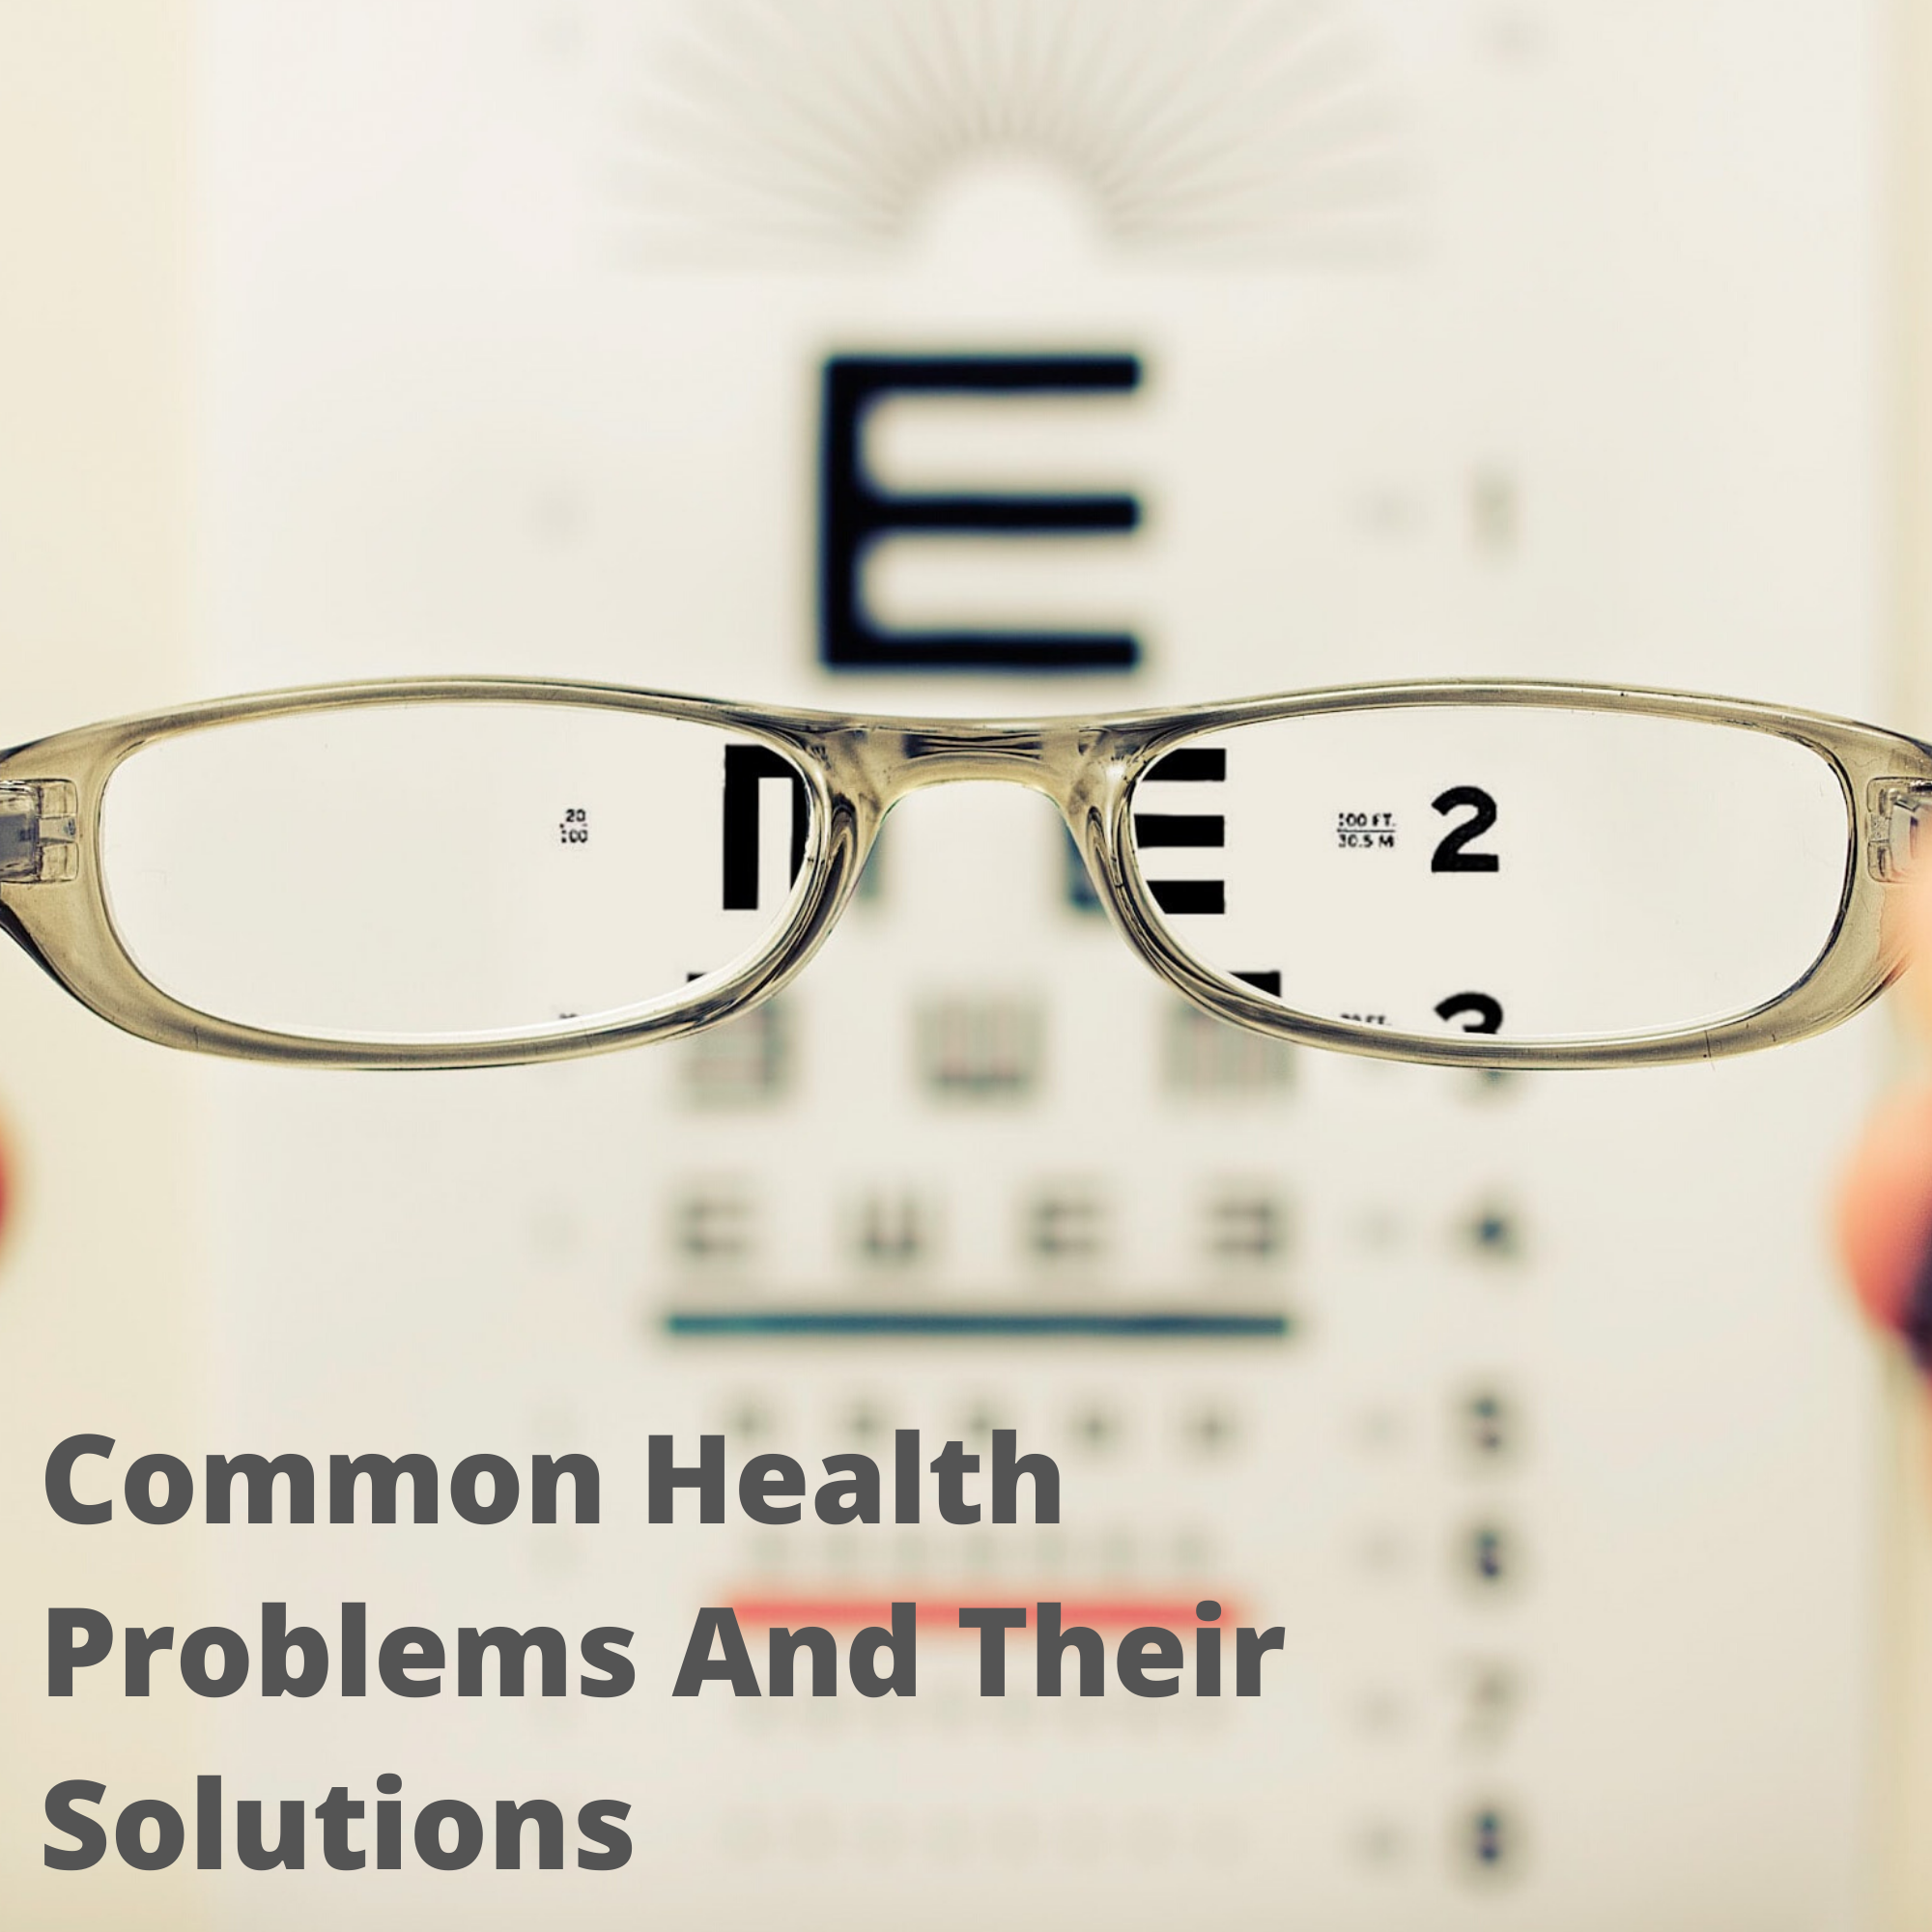 Common Health Problems And Their Solutions